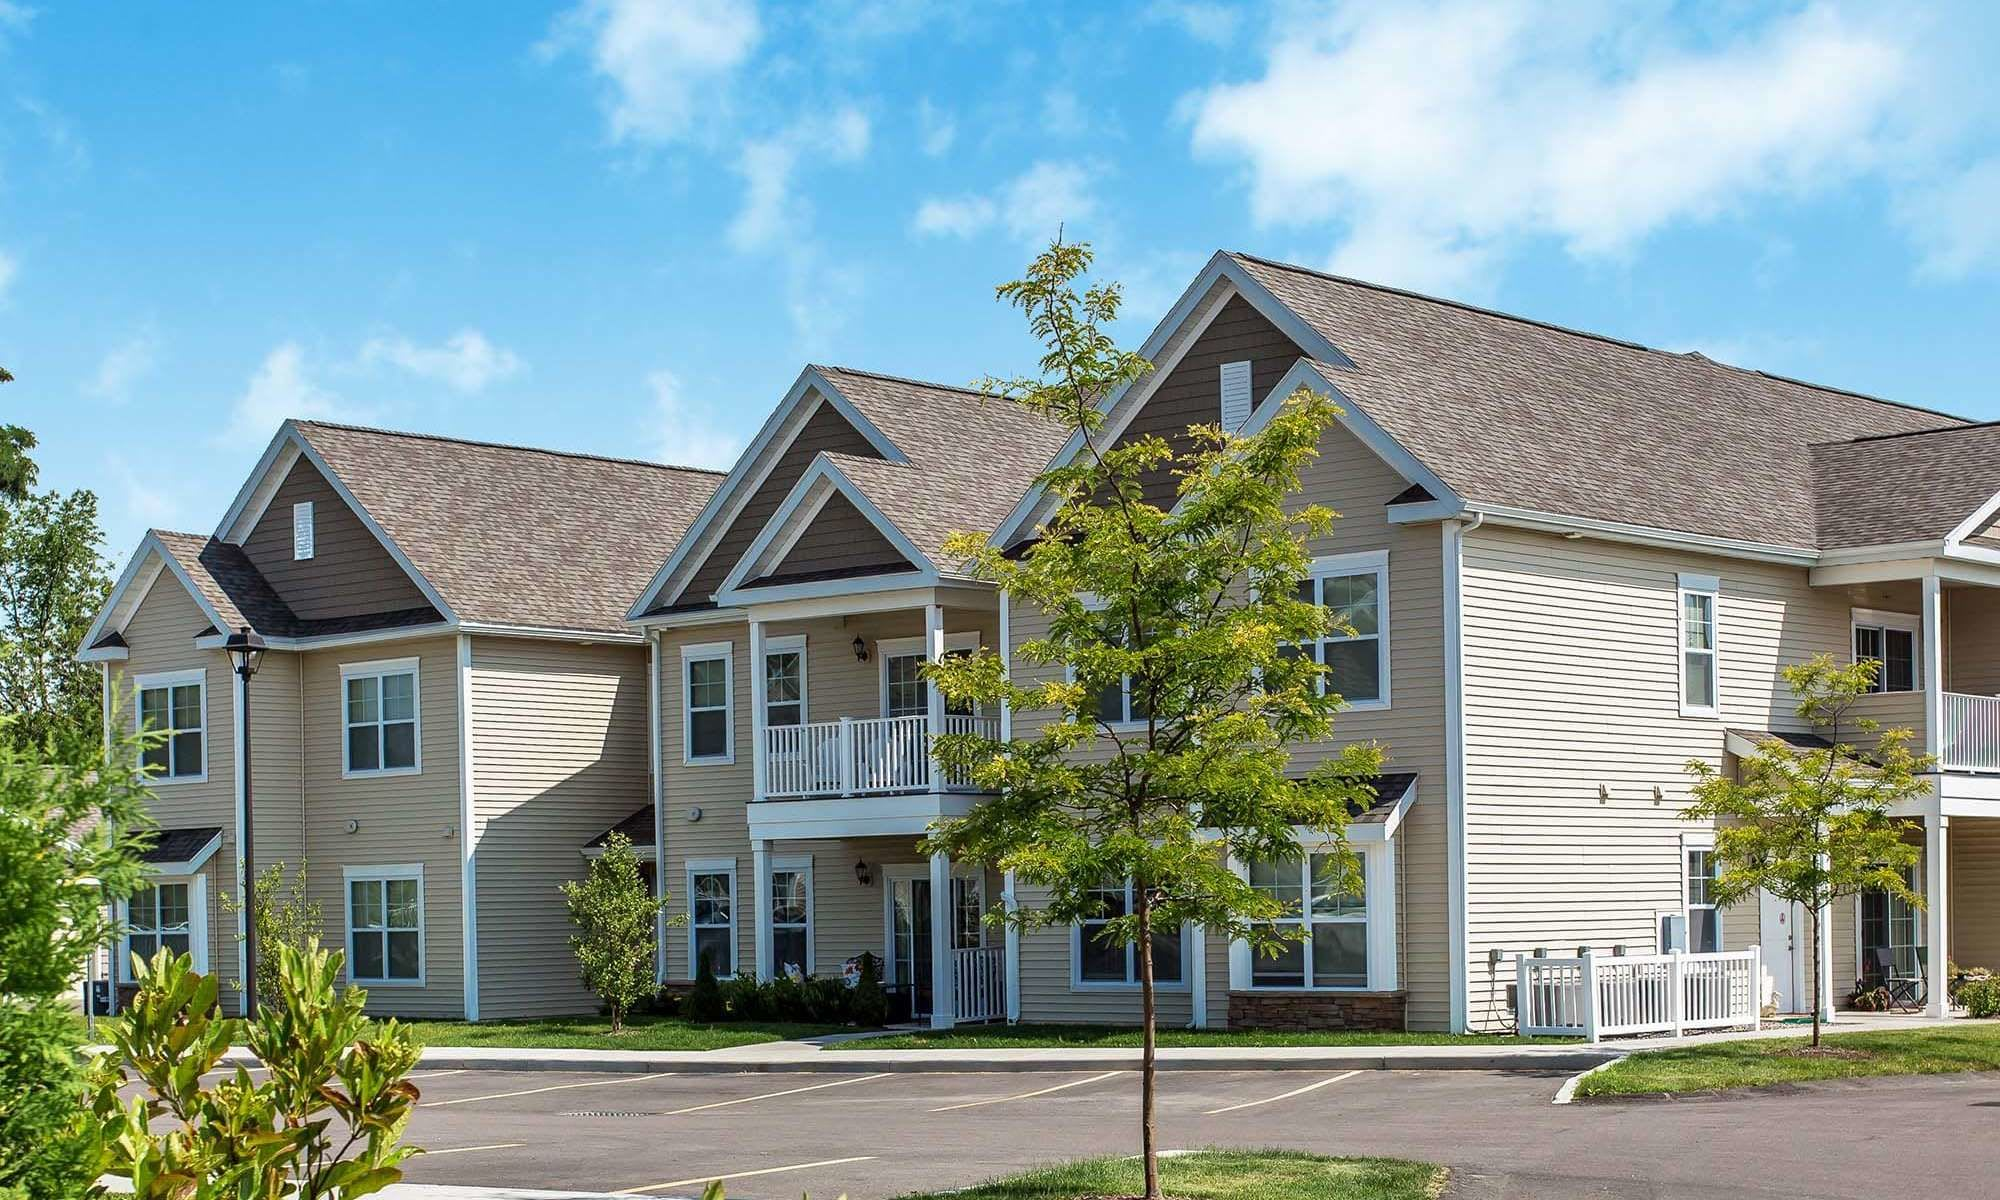 Apartments in Camillus, New York